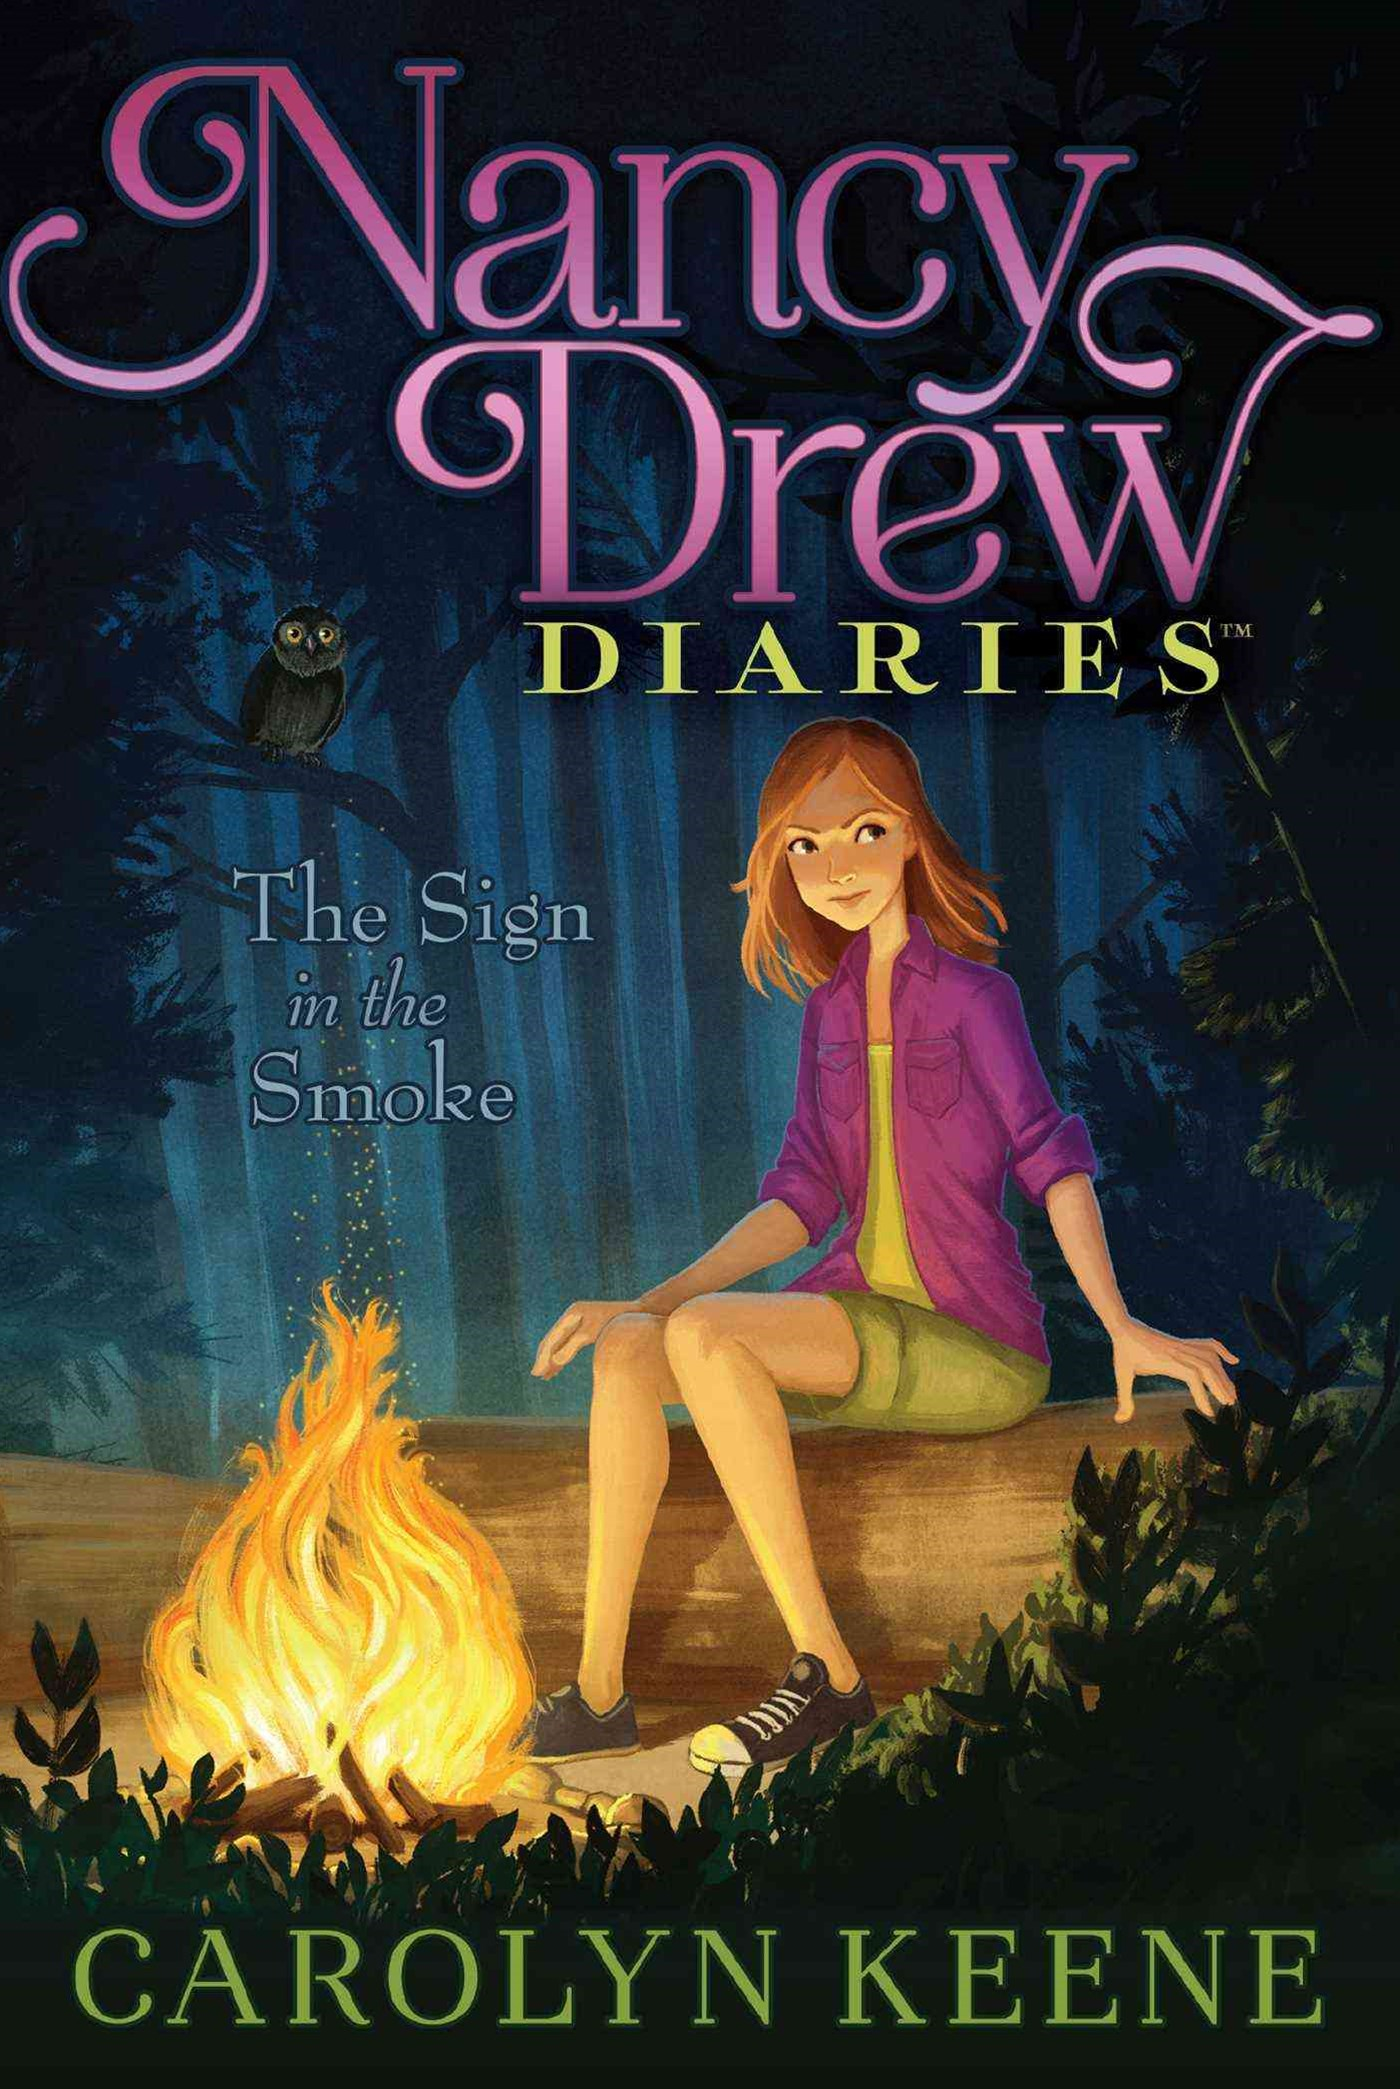 Nancy Drew Diaries #12 Sign in the Smoke